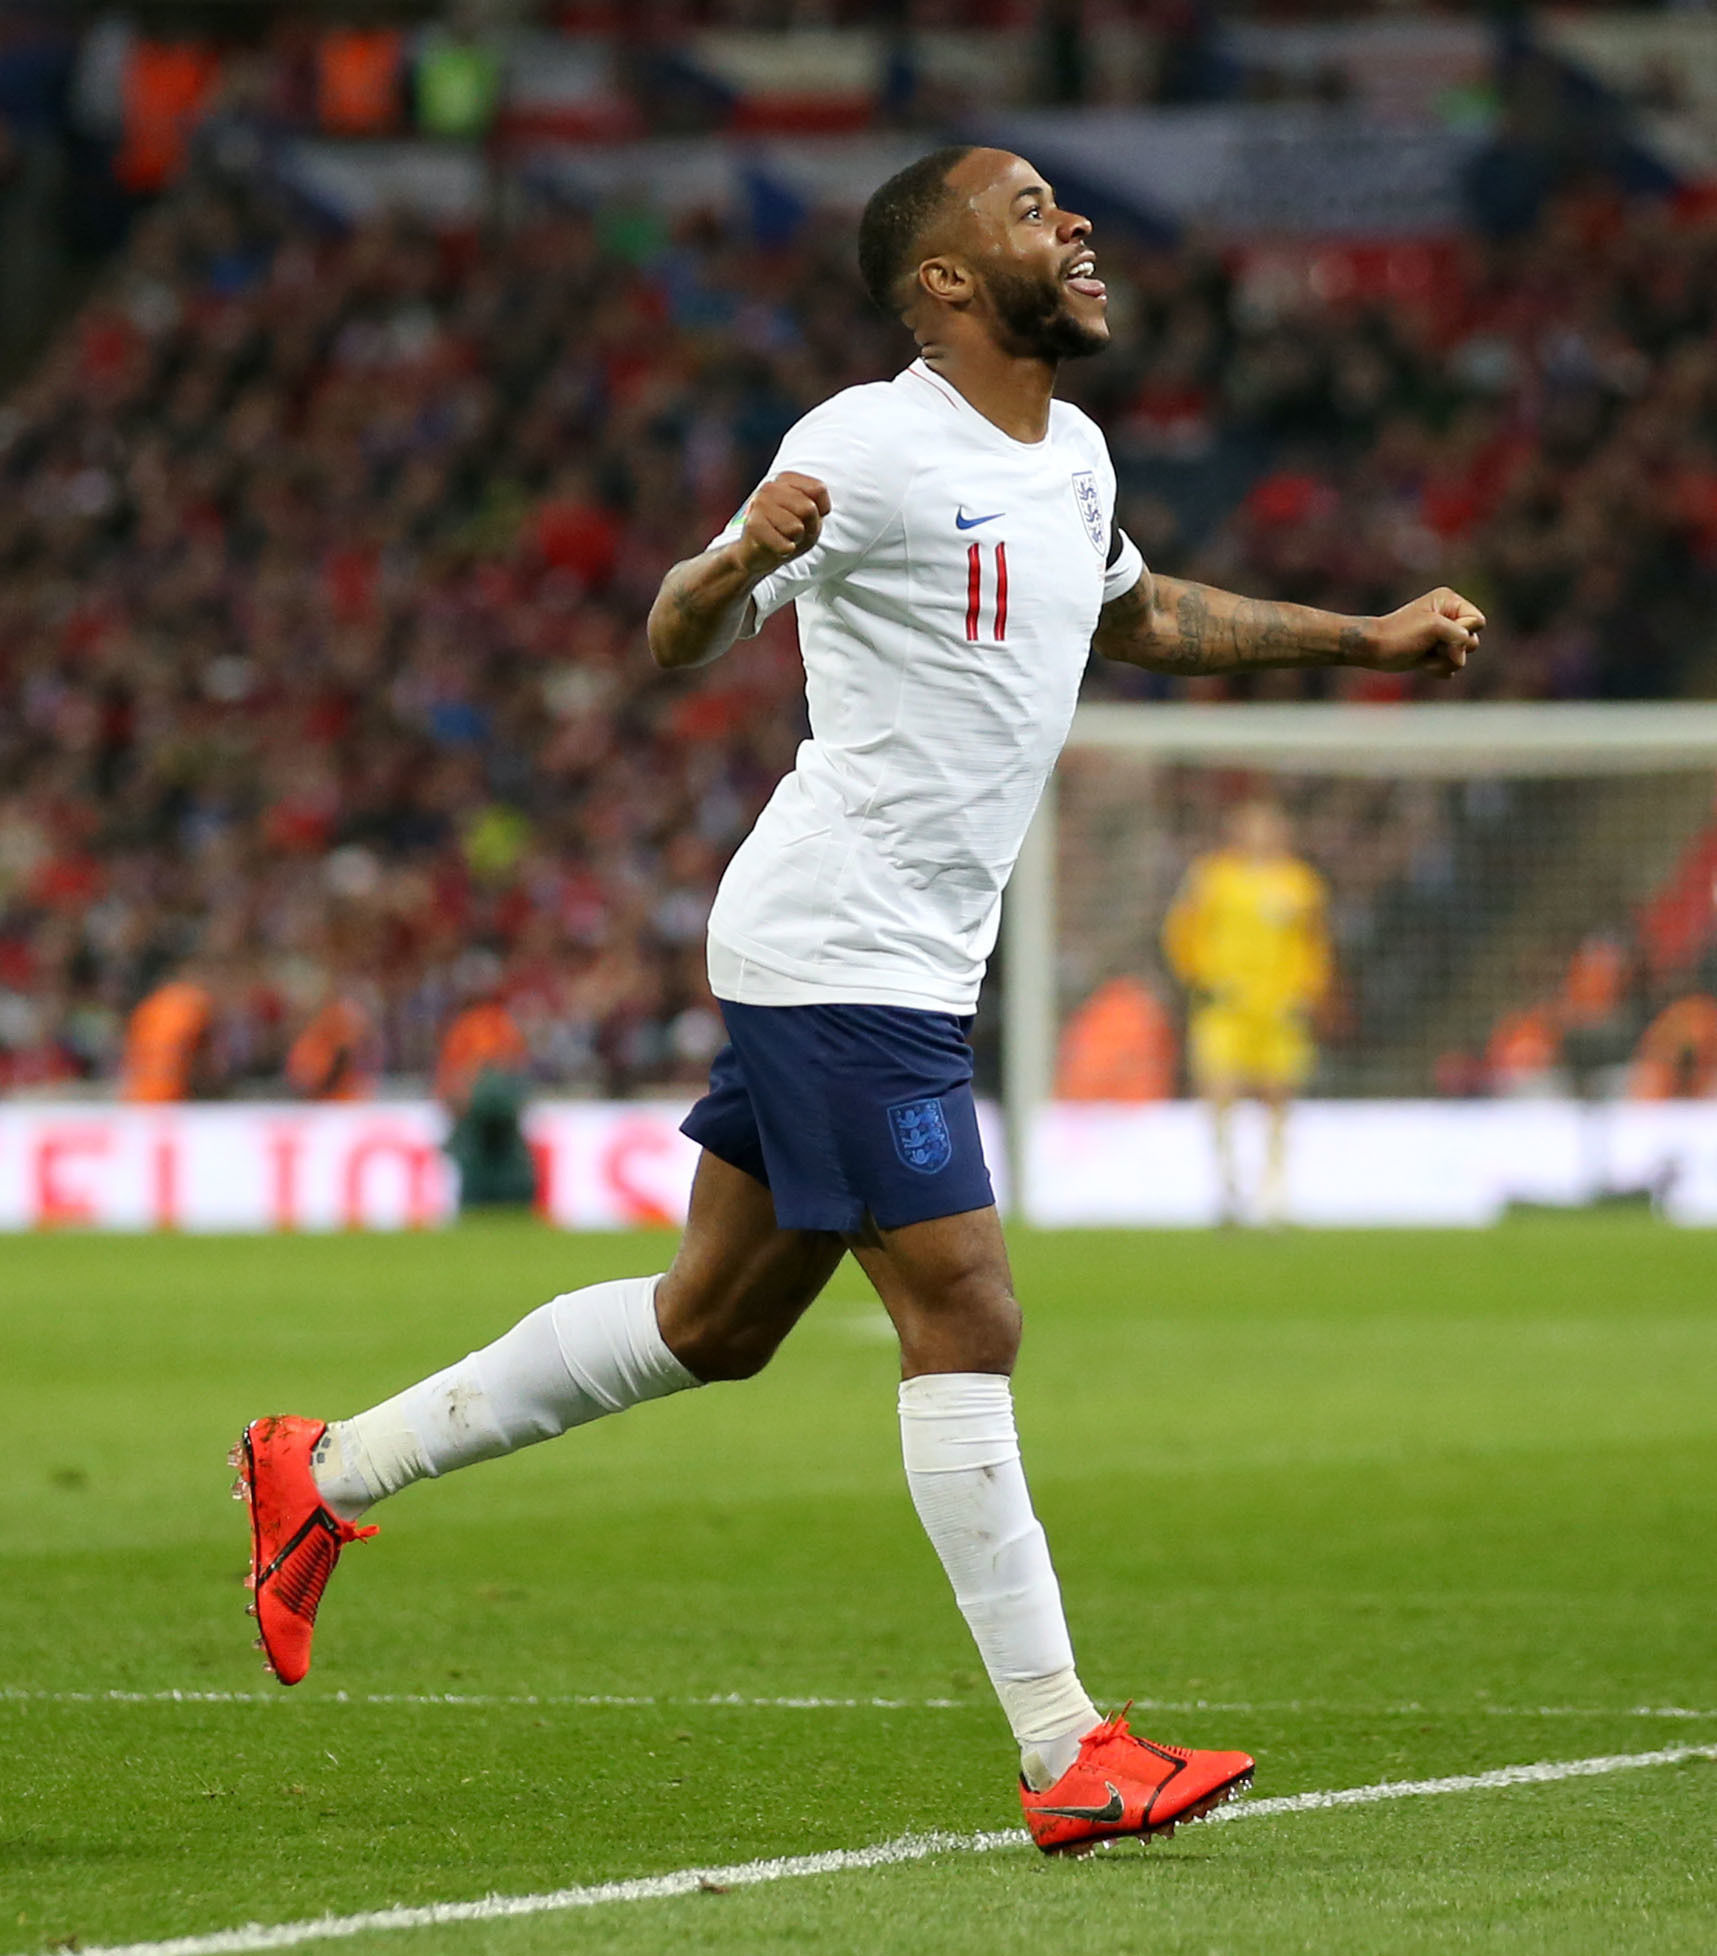 STAR MAN: Raheem Sterling celebrates during England's 5-0 win over the Czech Republic on Friday (Picture: Steven Paston/PA Wire)